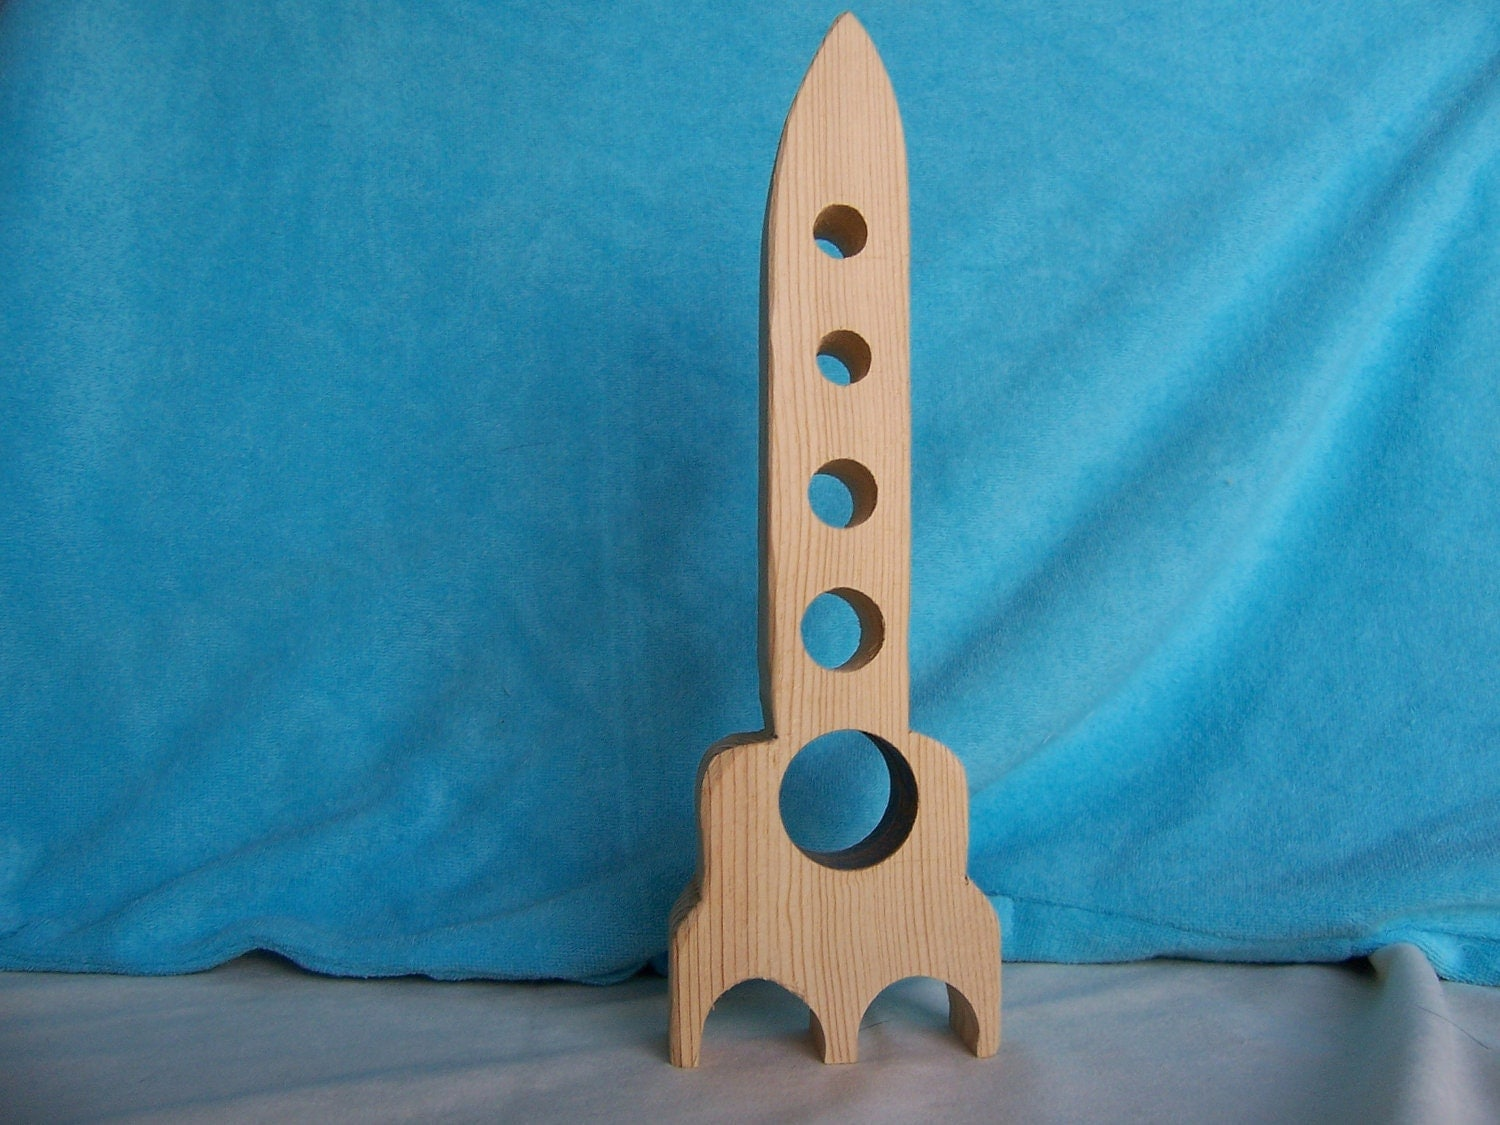 Toy Rocket Ship Handcrafted From Reclaimed Wood For The Kids